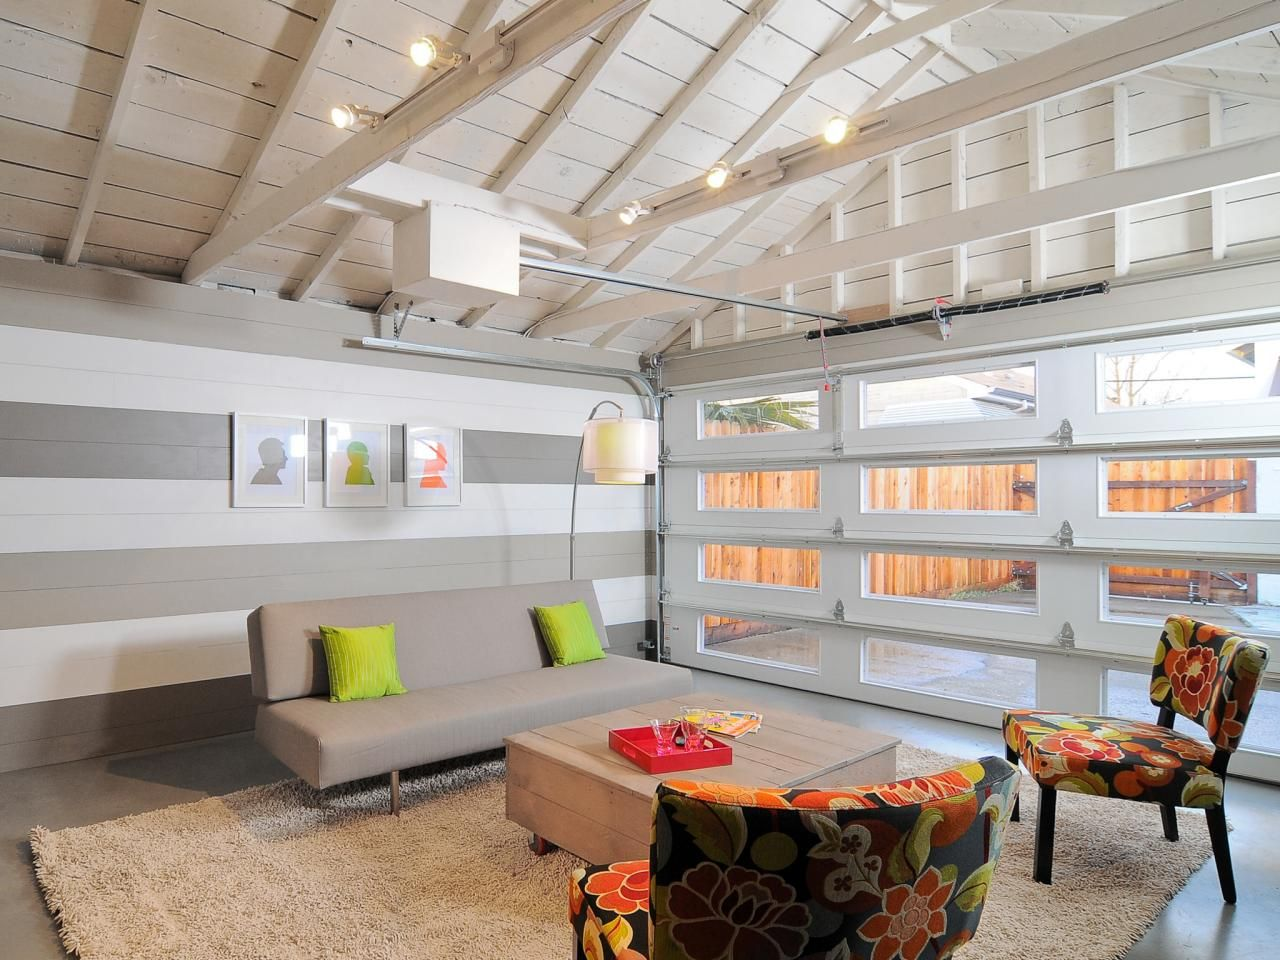 How To Turn A Garage Into A Room